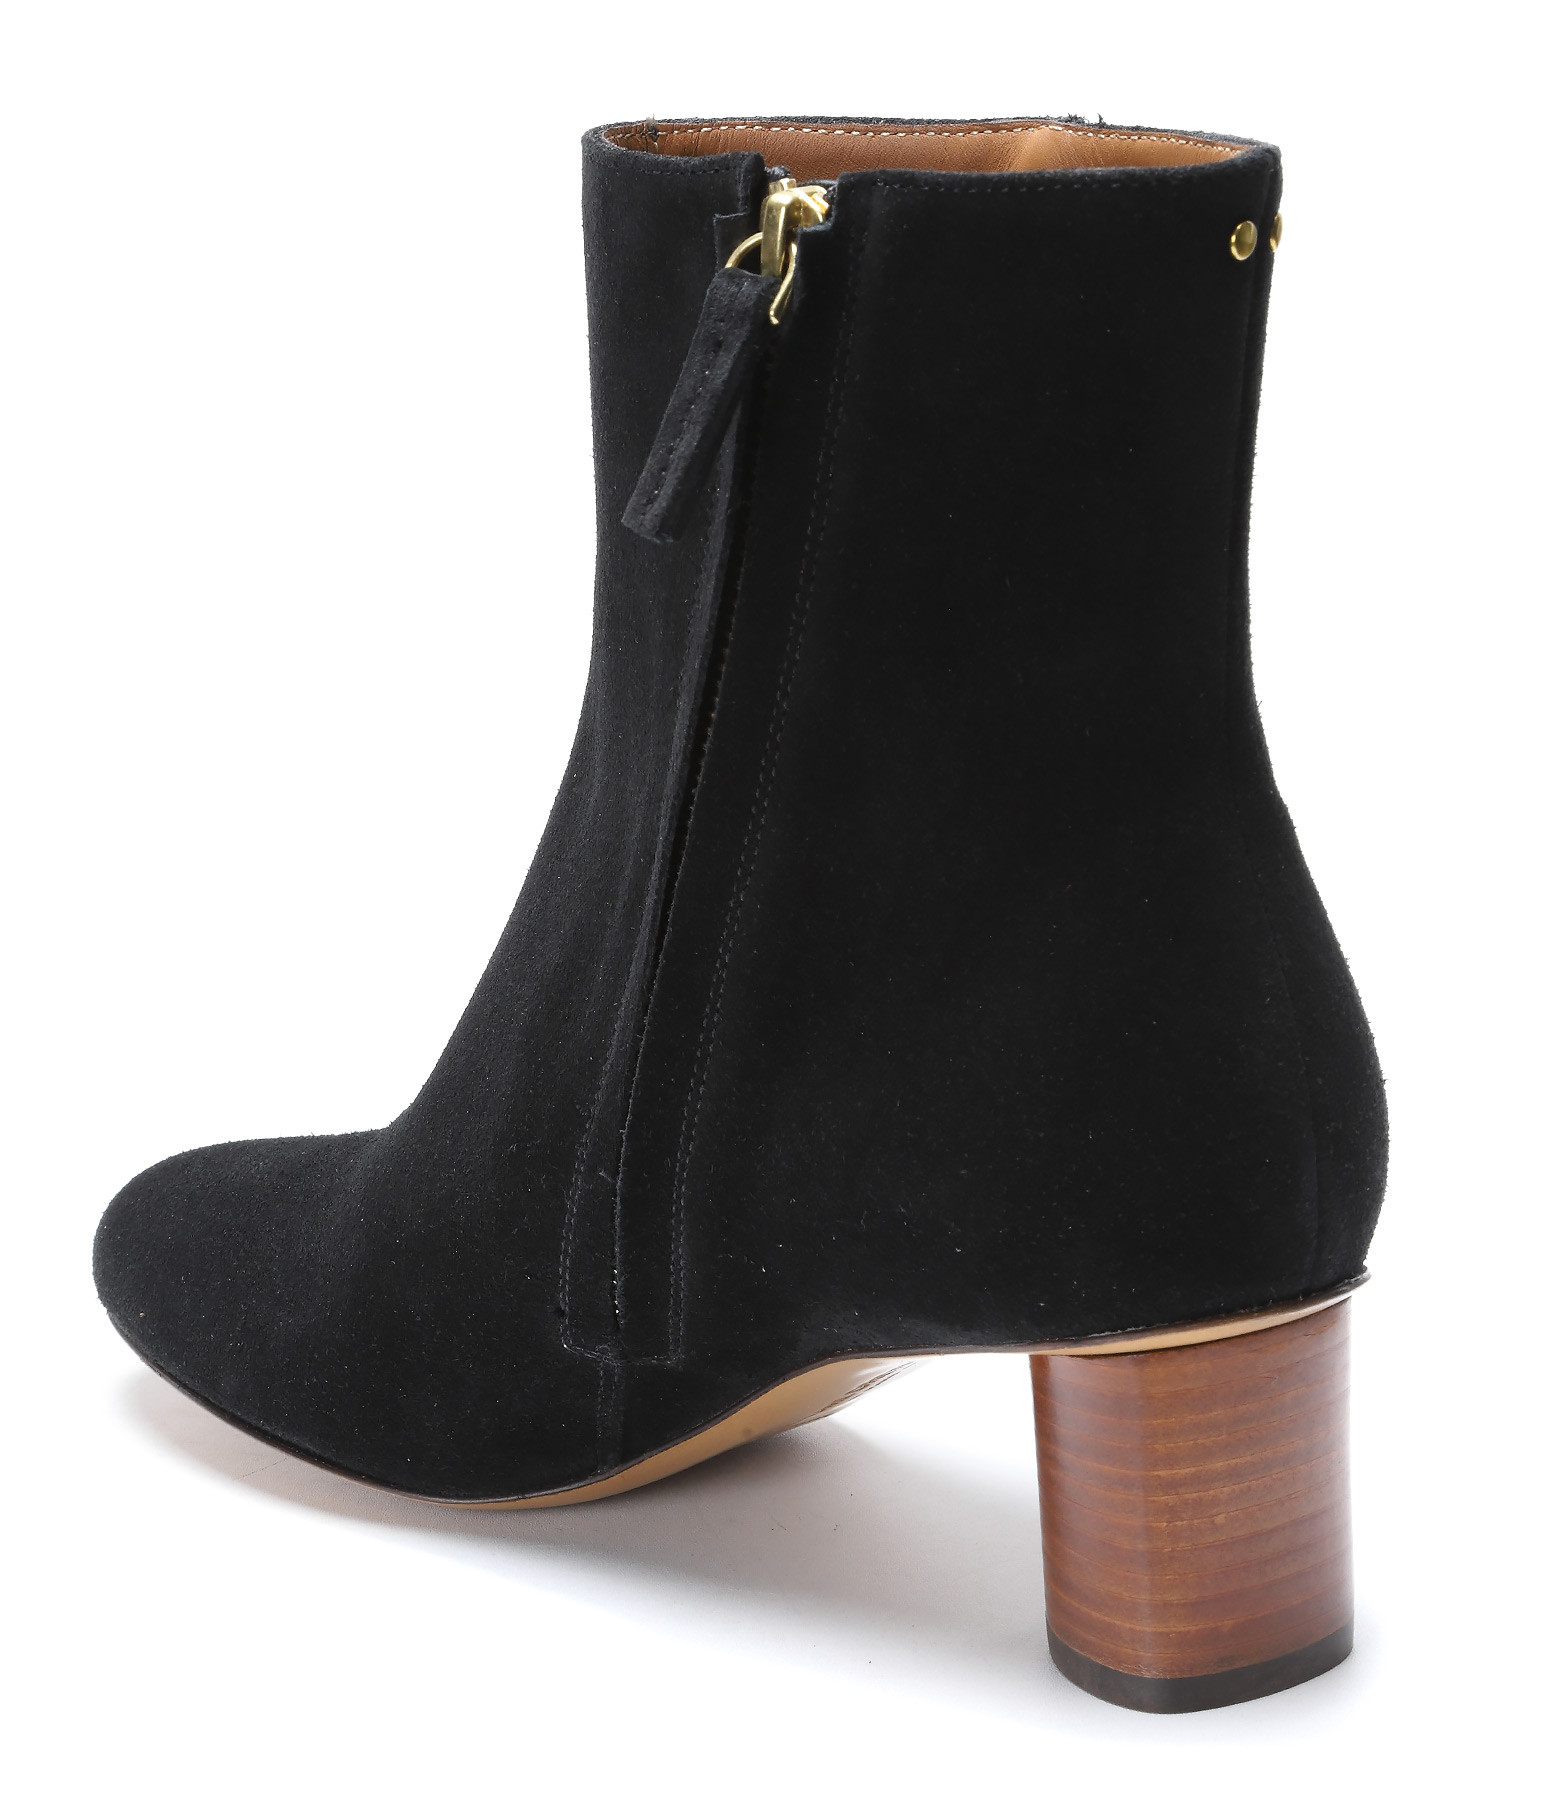 JEROME DREYFUSS - Bottines Patricia 50 Vachette Noir